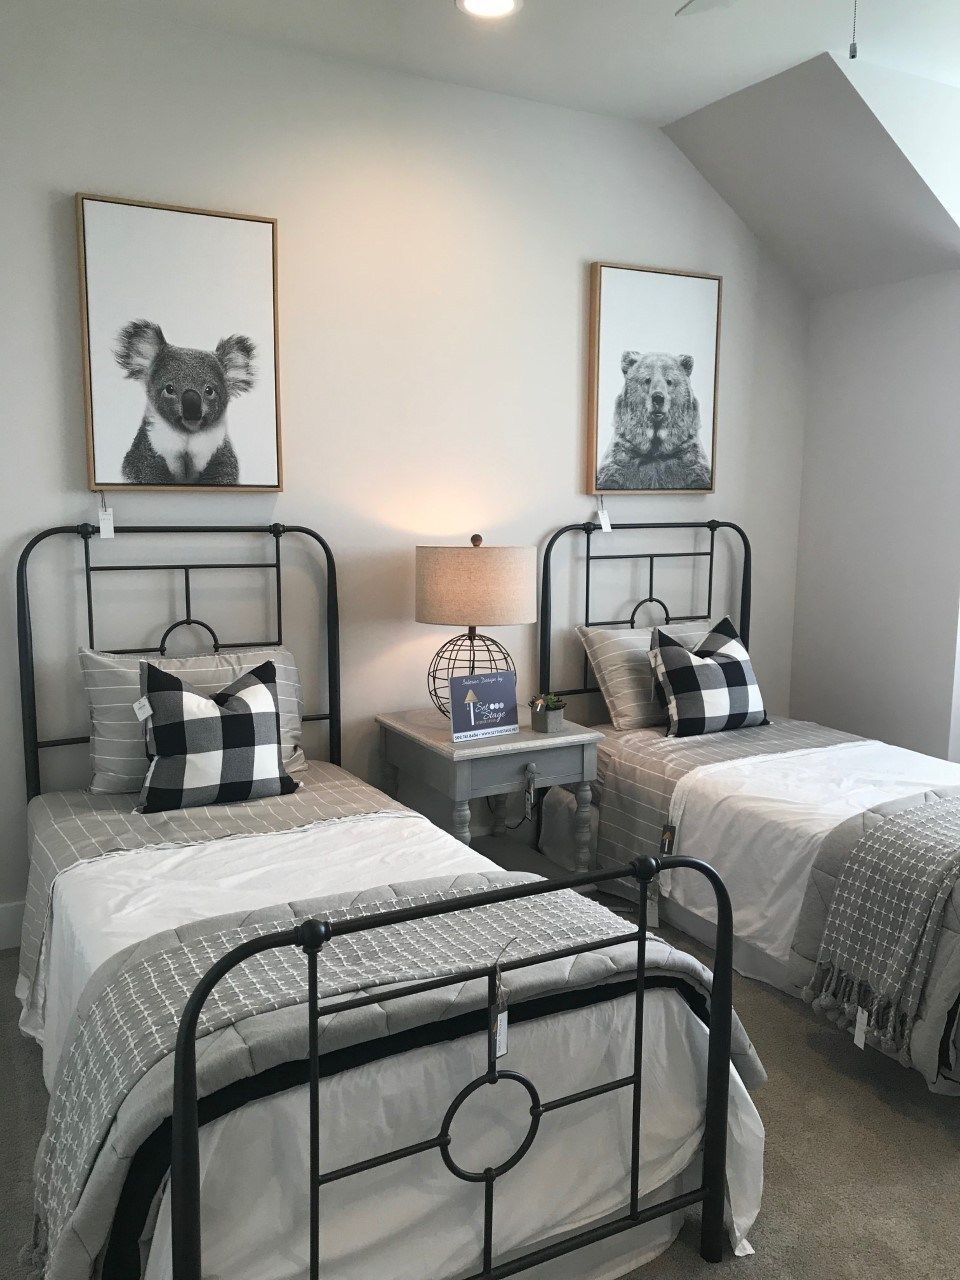 Best 41 Classy Bedrooms Twin Beds Ideas For Small Rooms In 2020 400 x 300